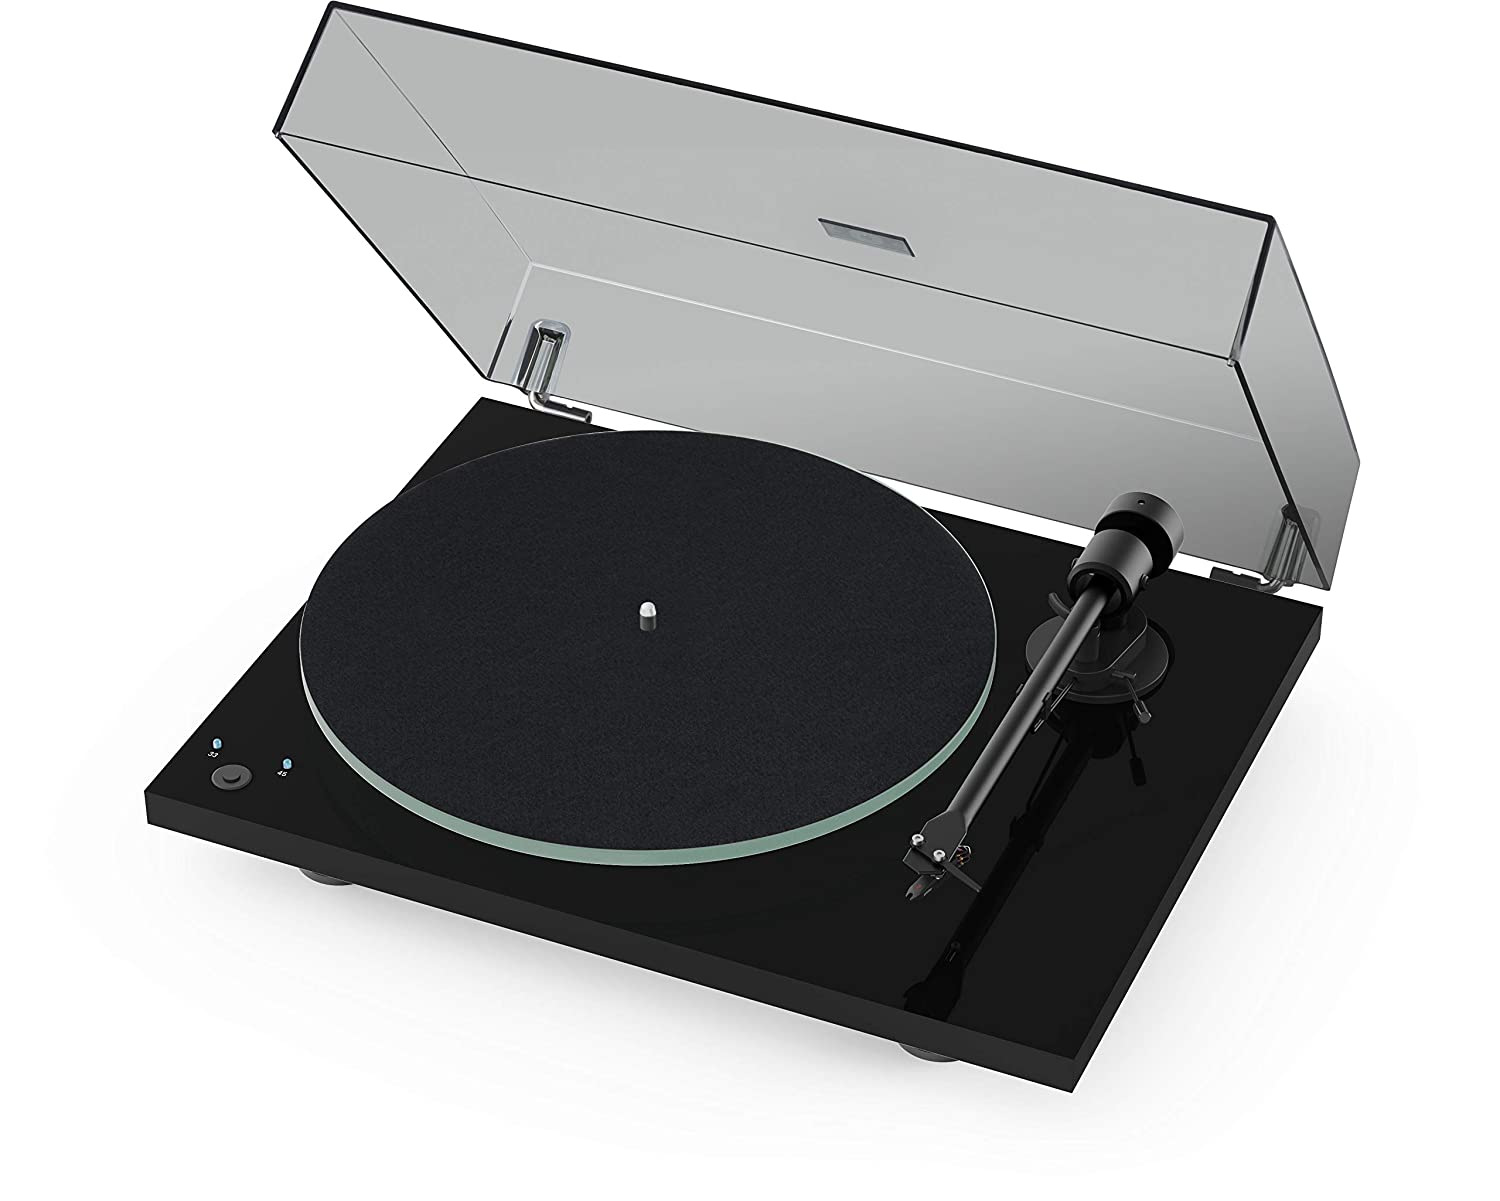 Amazon.com: Pro-Ject T1 Phono SB Turntable with Built-in ...